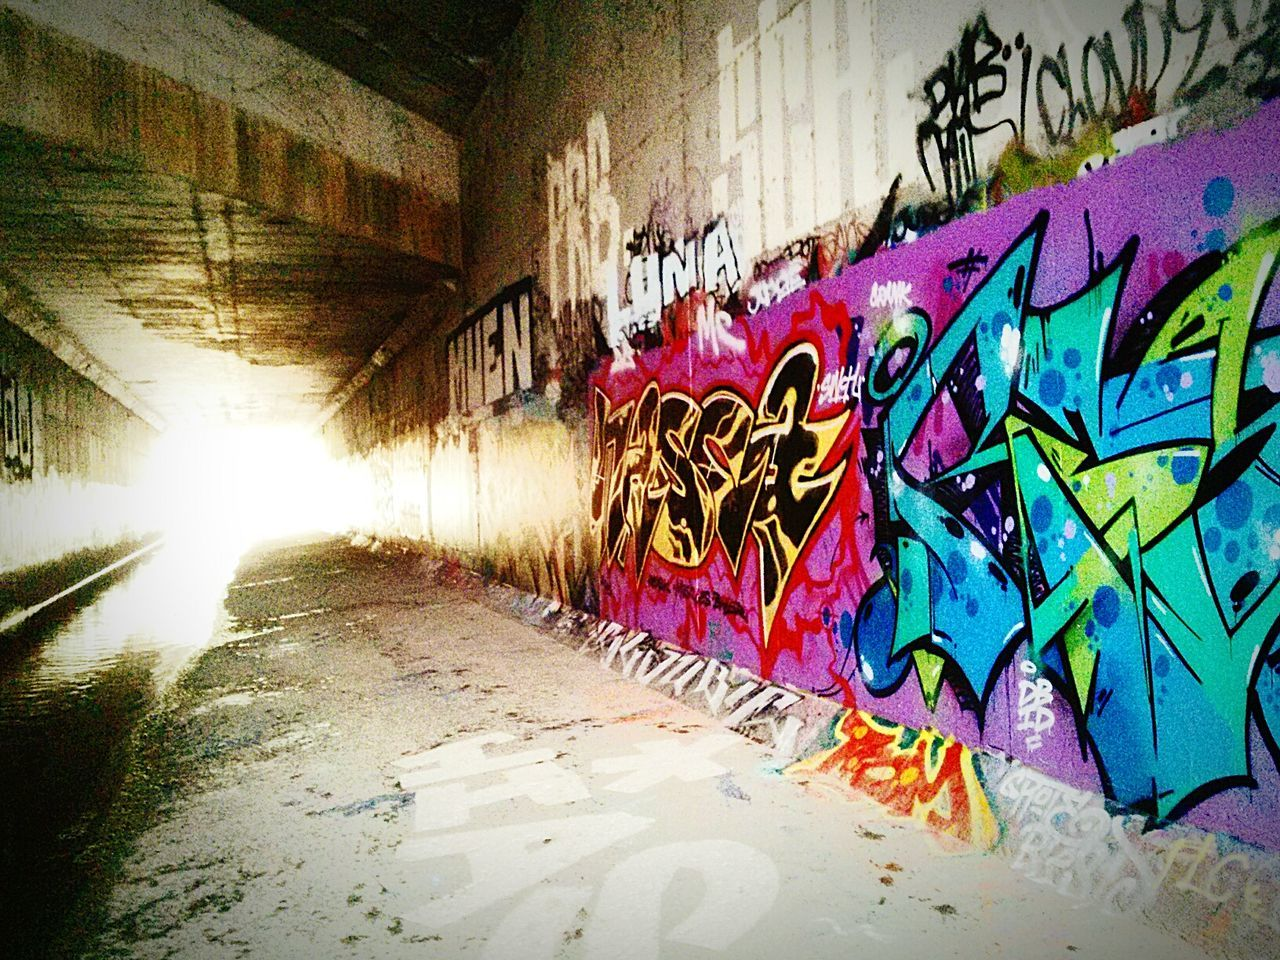 graffiti, architecture, built structure, wall - building feature, multi colored, street art, building exterior, day, no people, outdoors